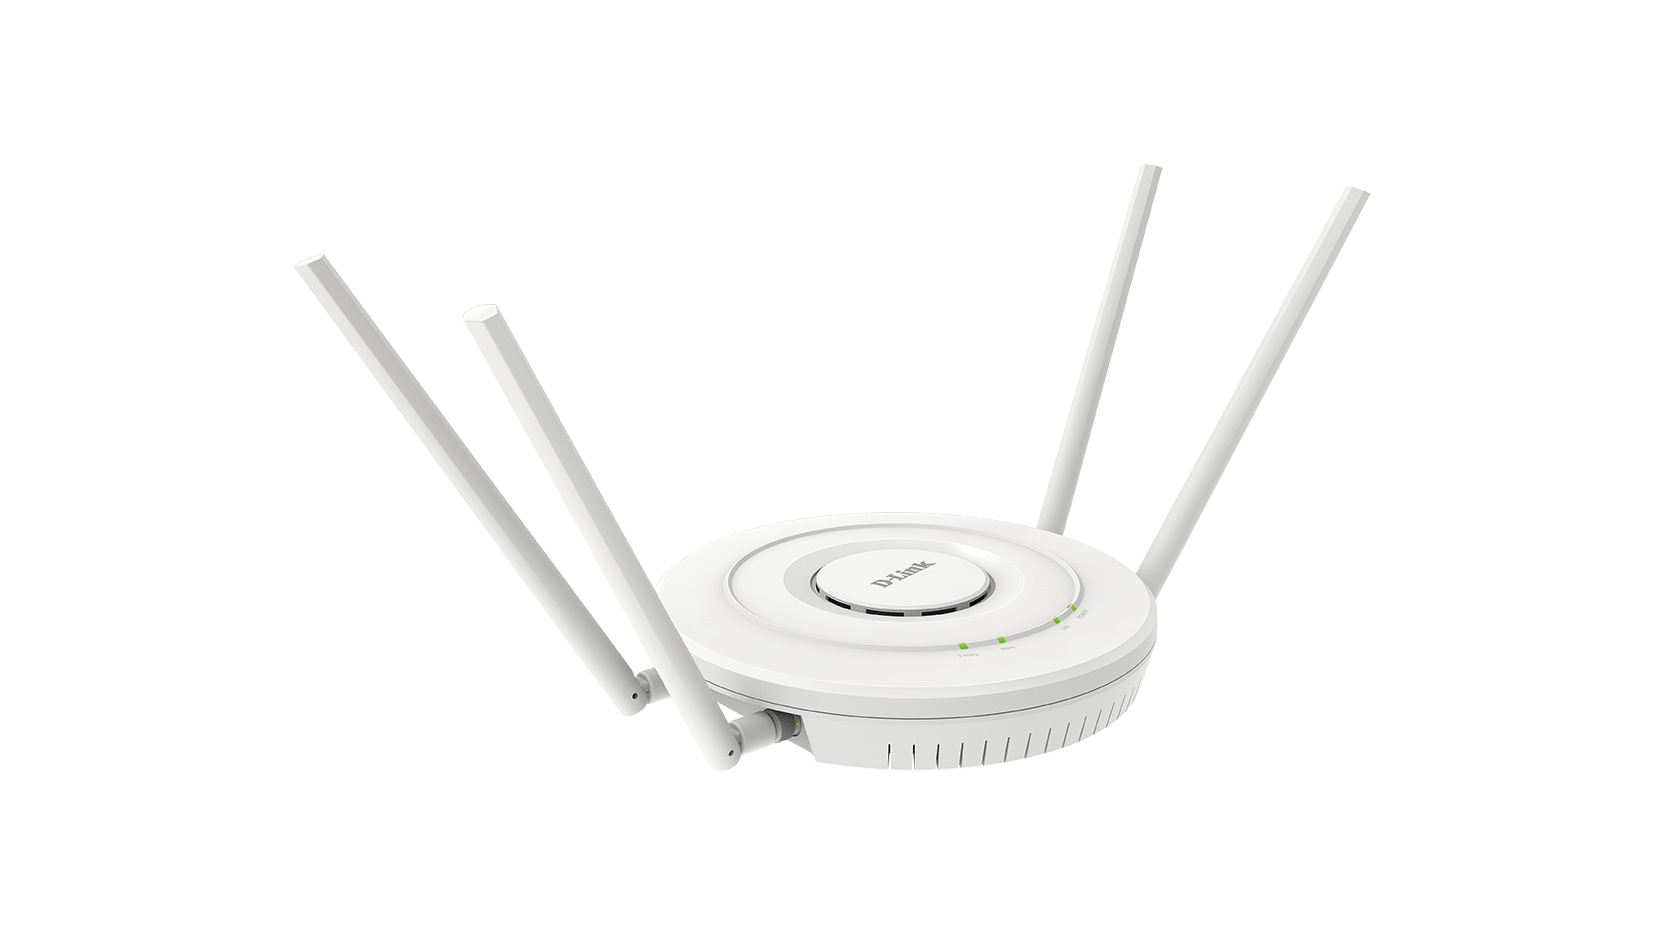 Dwl Ape Wireless Ac Dualband Unified Access Point